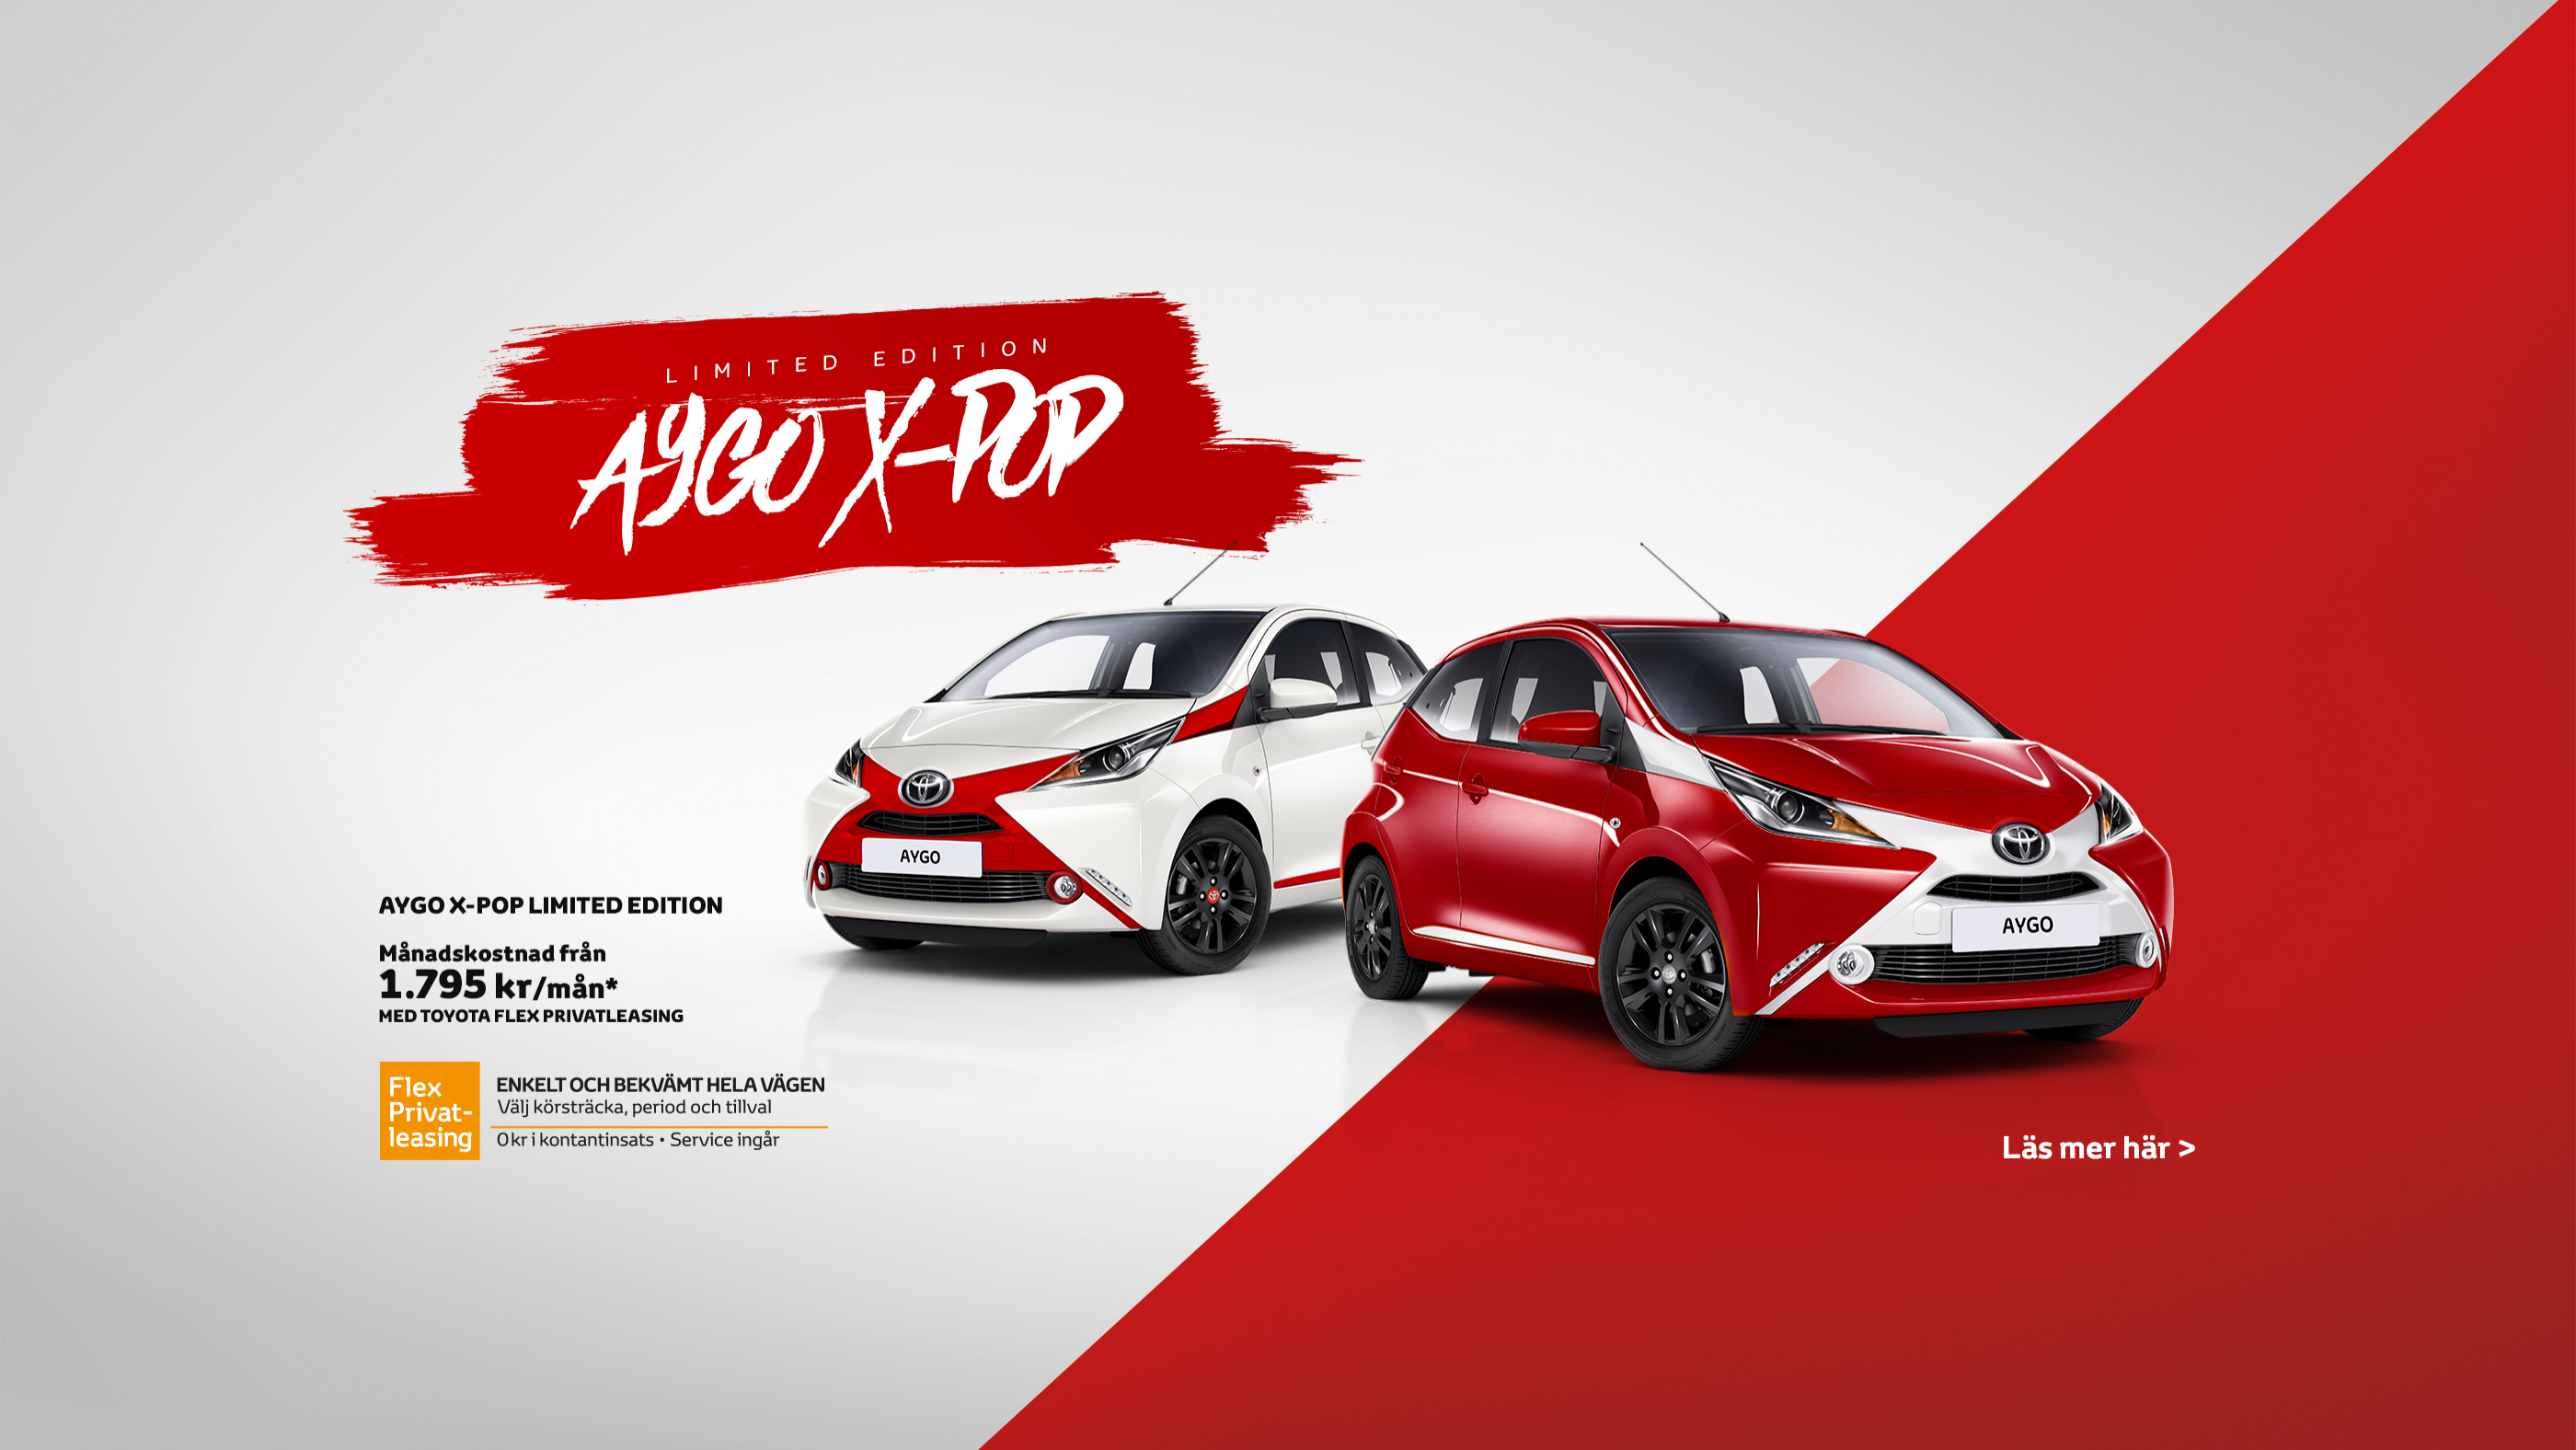 Toyota Aygo X-pop, Limited Edition design. Marknadsföringsmaterial online.